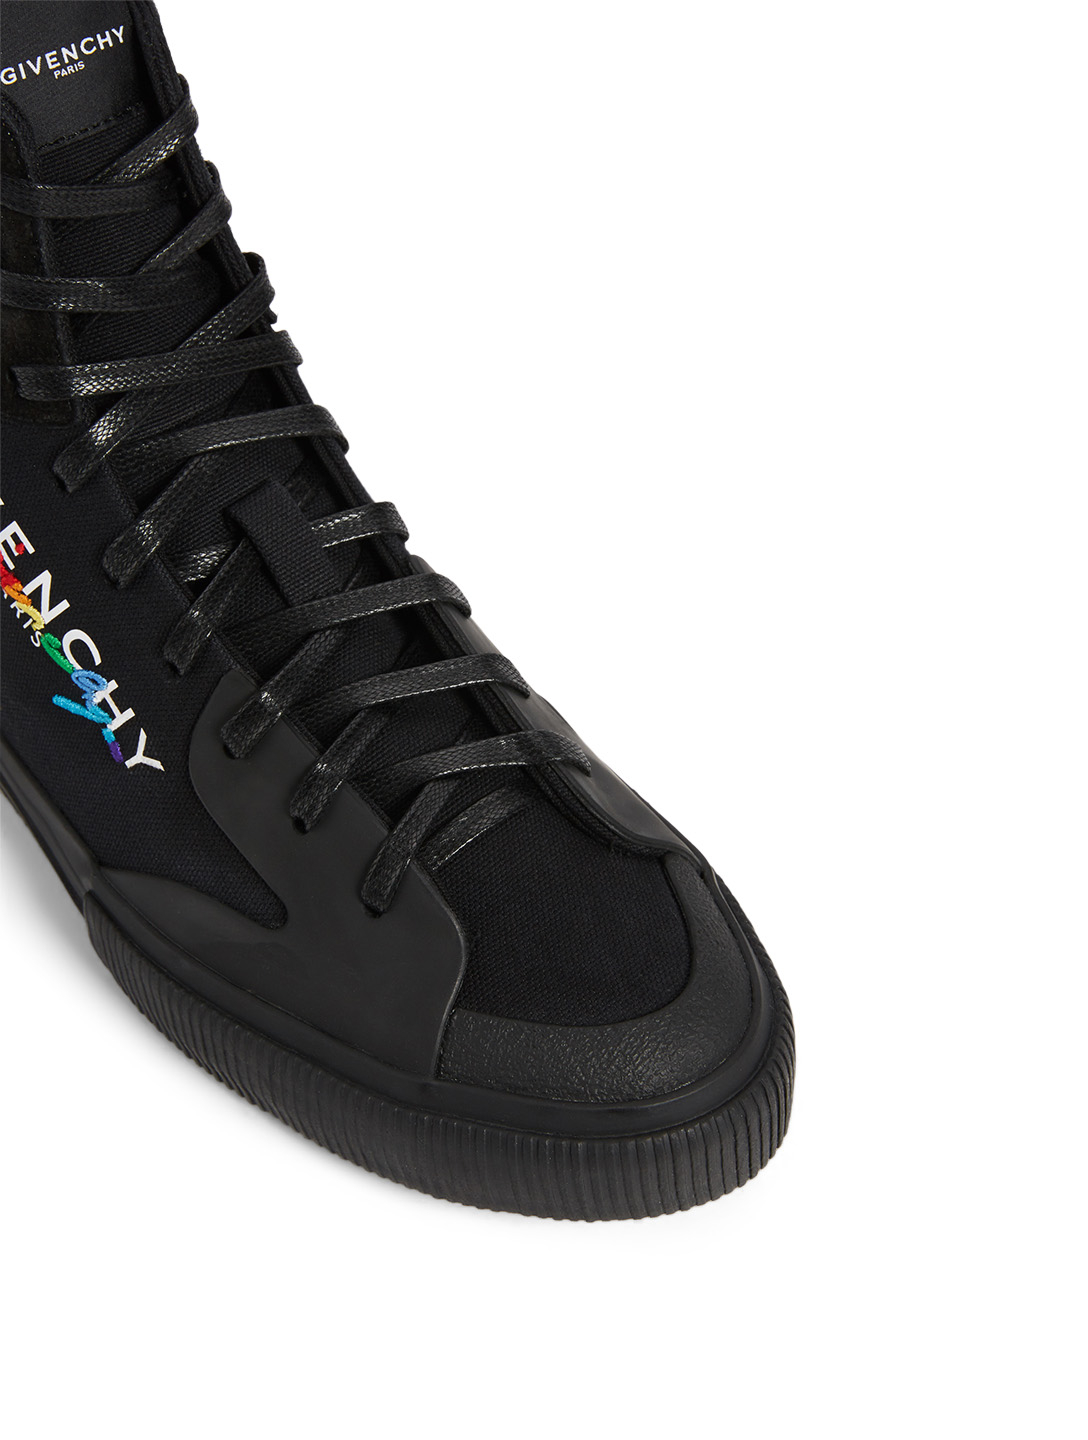 GIVENCHY Baskets Tennis Light en toile Hommes